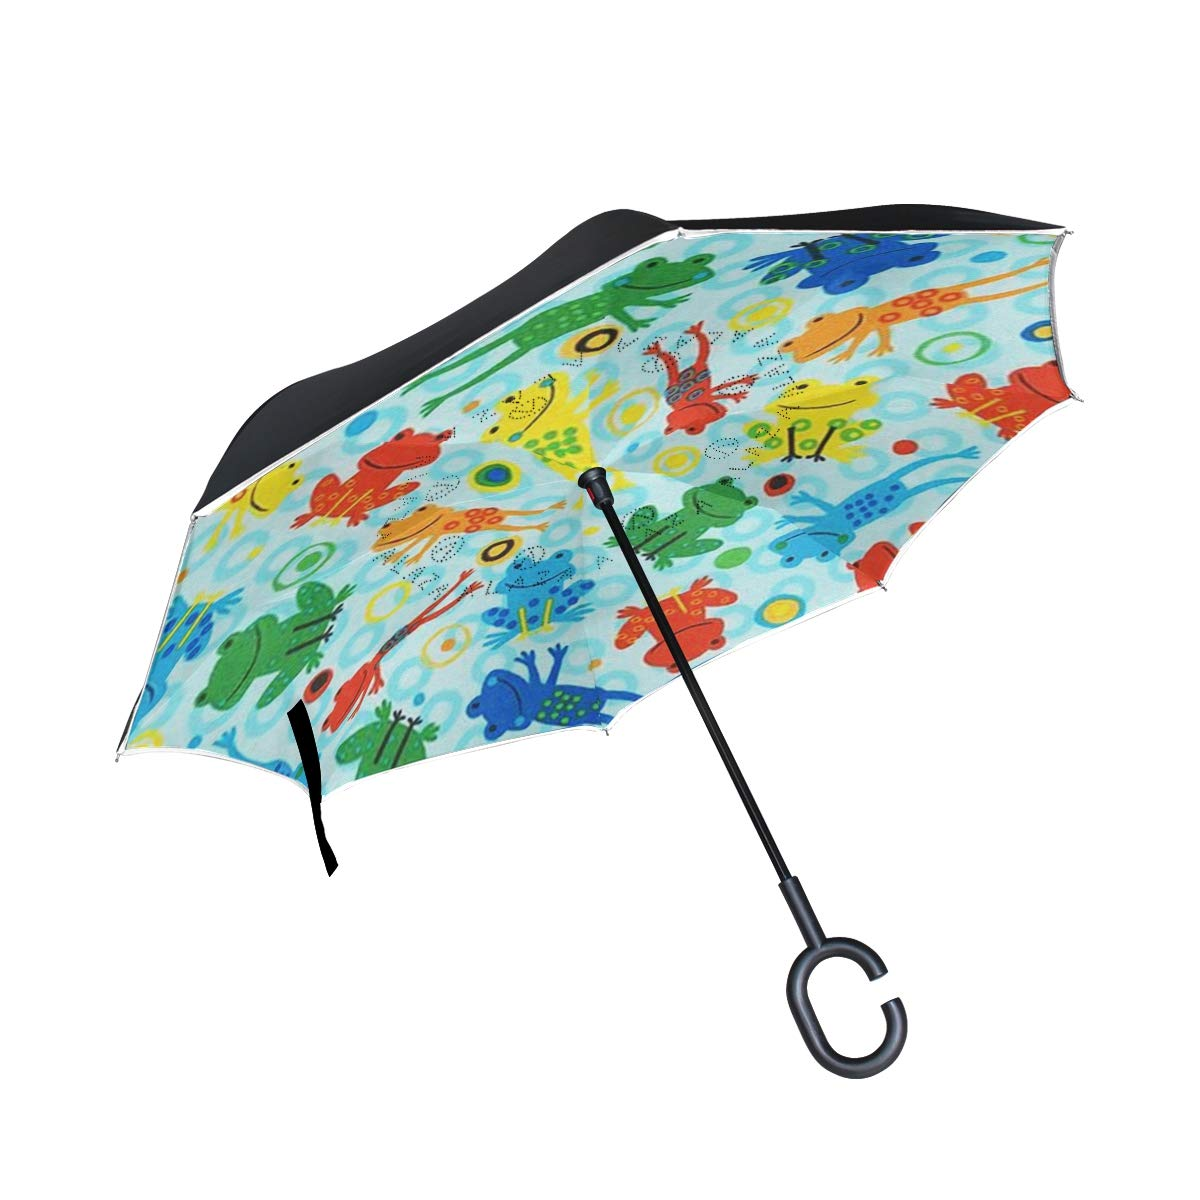 DOPKEEP Jump Into Fun Double Layer Inverted Umbrella Cars Reverse Umbrella,UV Protection Windproof Large Straight Umbrella for Car Rain Outdoor with C-Shaped Handle by DOPKEEP (Image #1)